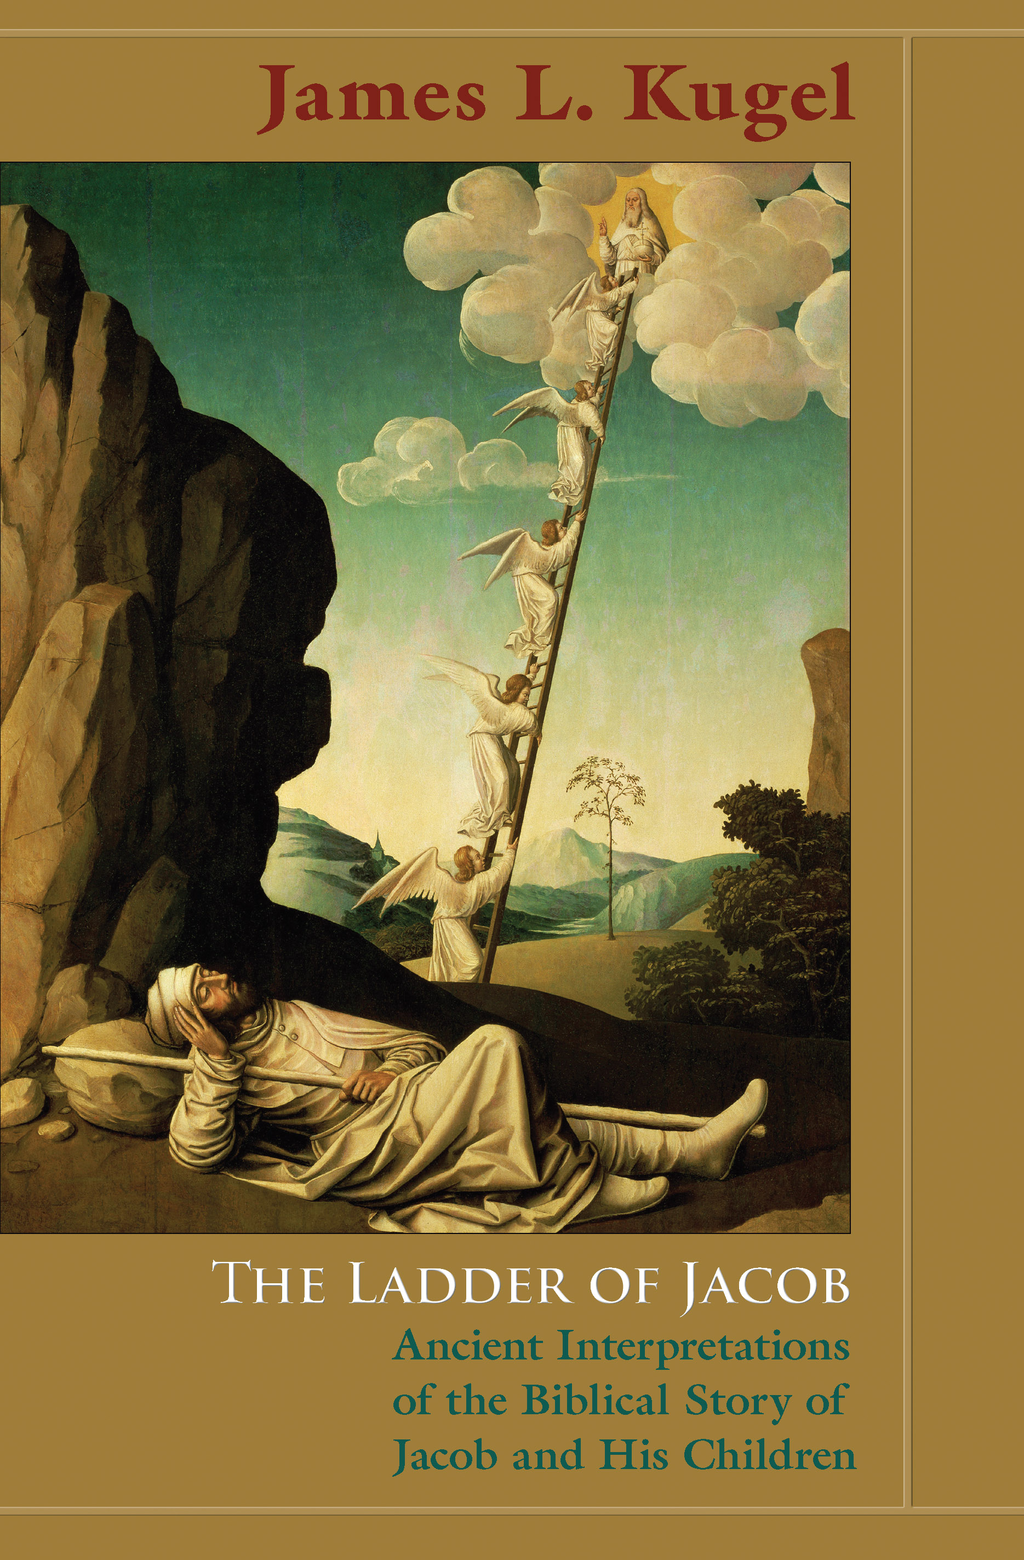 The Ladder of Jacob Ancient Interpretations of the Biblical Story of Jacob and His Children